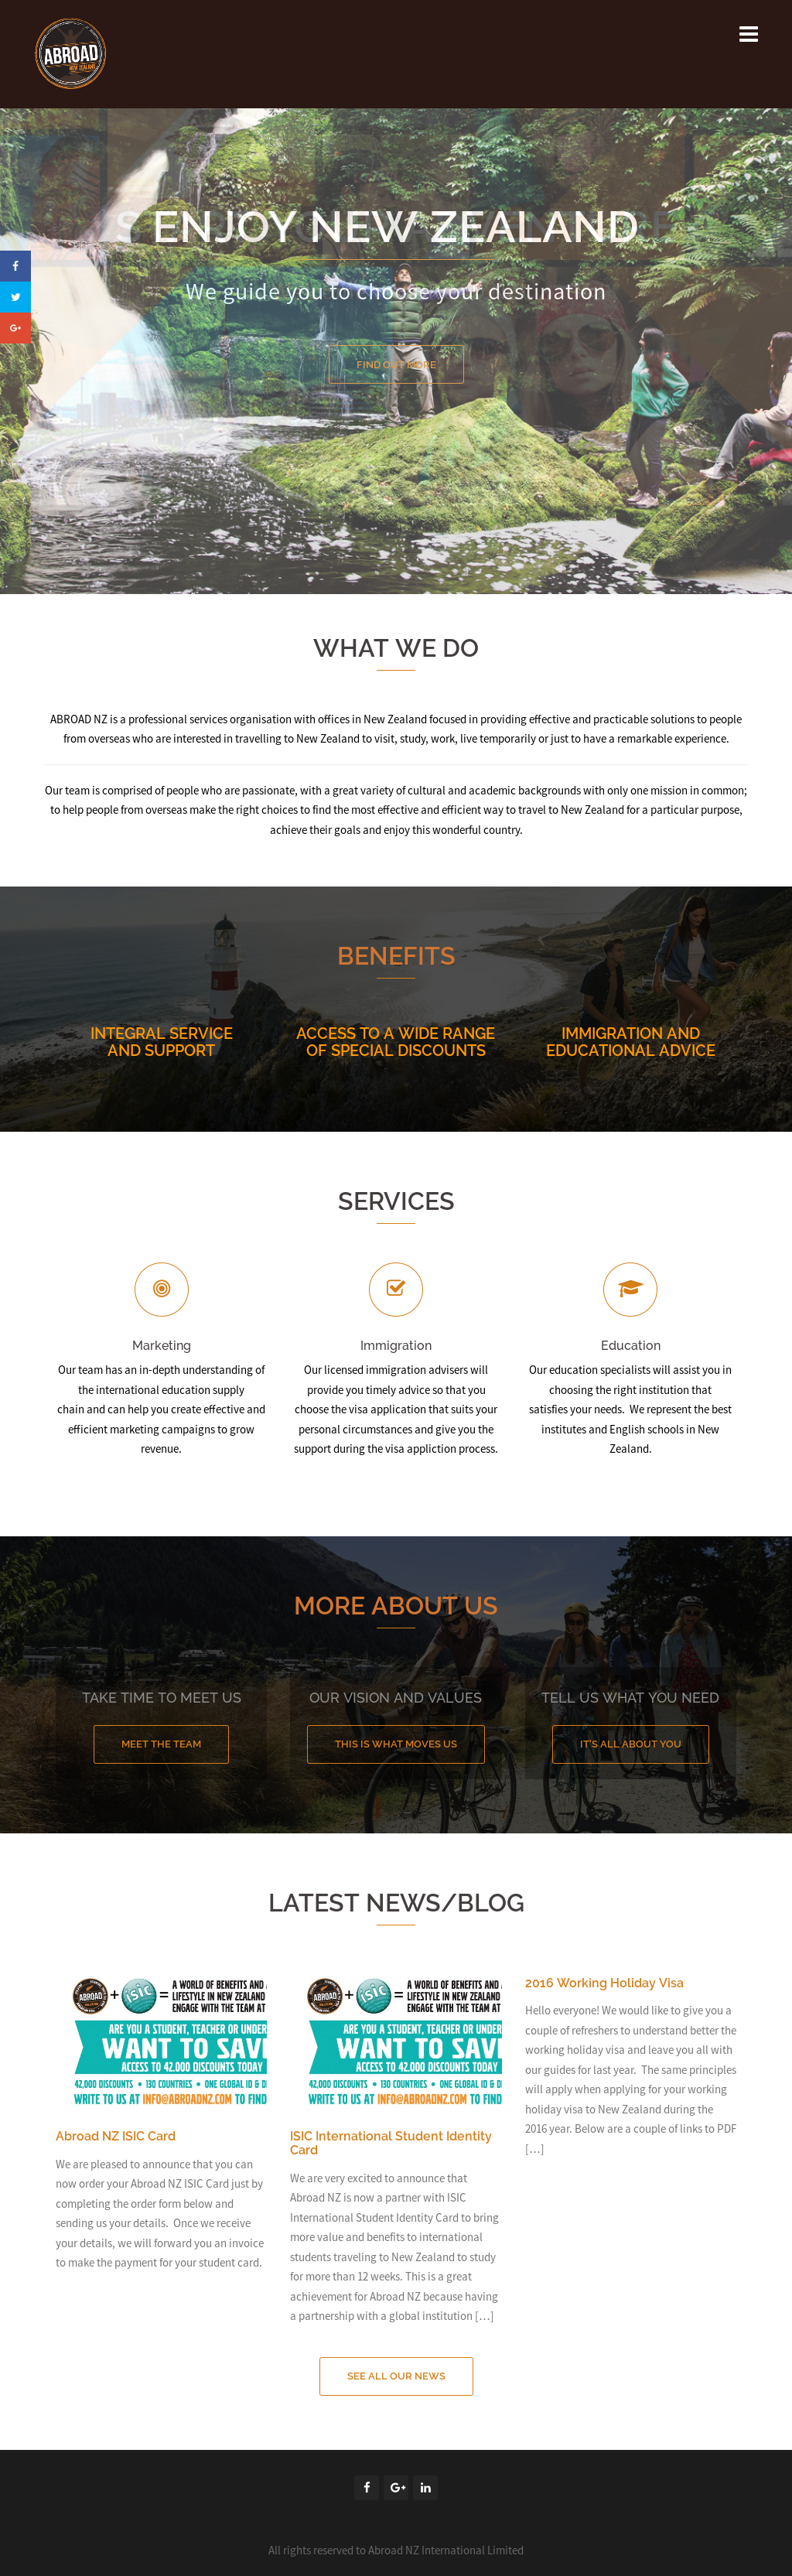 Abroad-nz Competitors, Revenue and Employees - Owler Company Profile